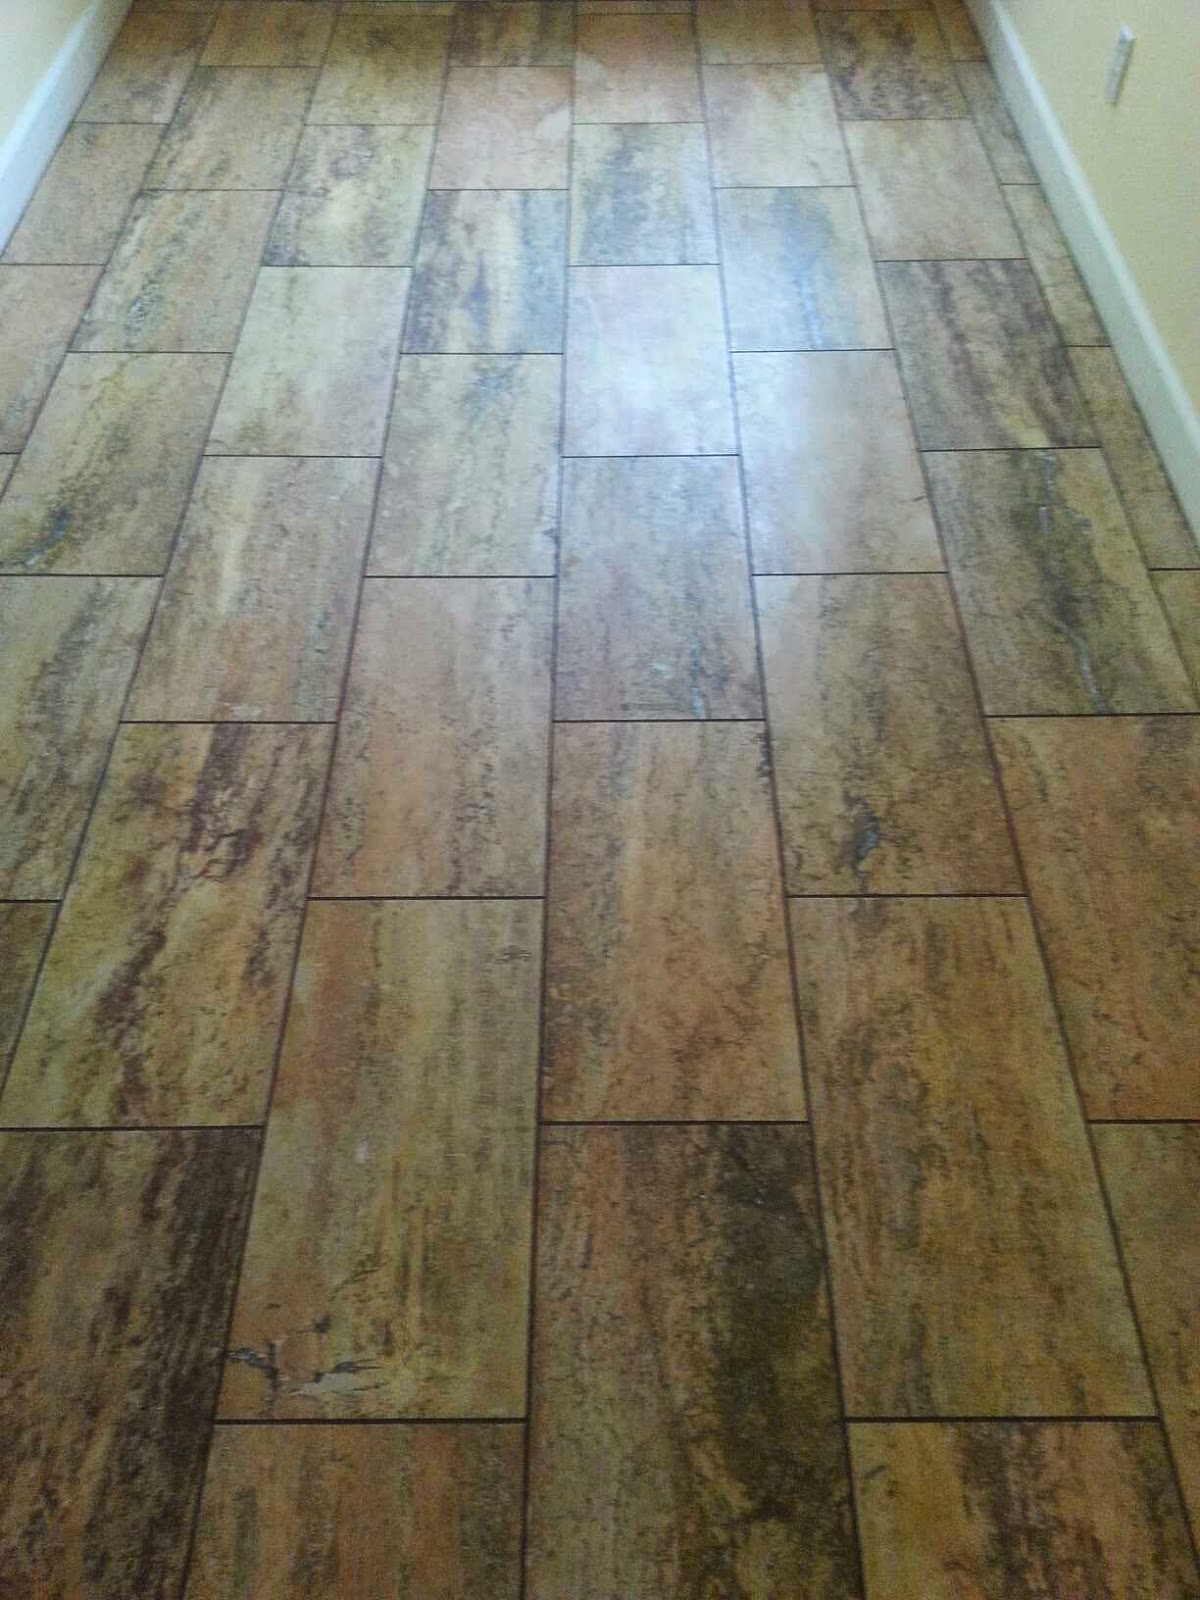 Phoenix Travertine Tile Flooring Planks Remodeling Contractor Projects